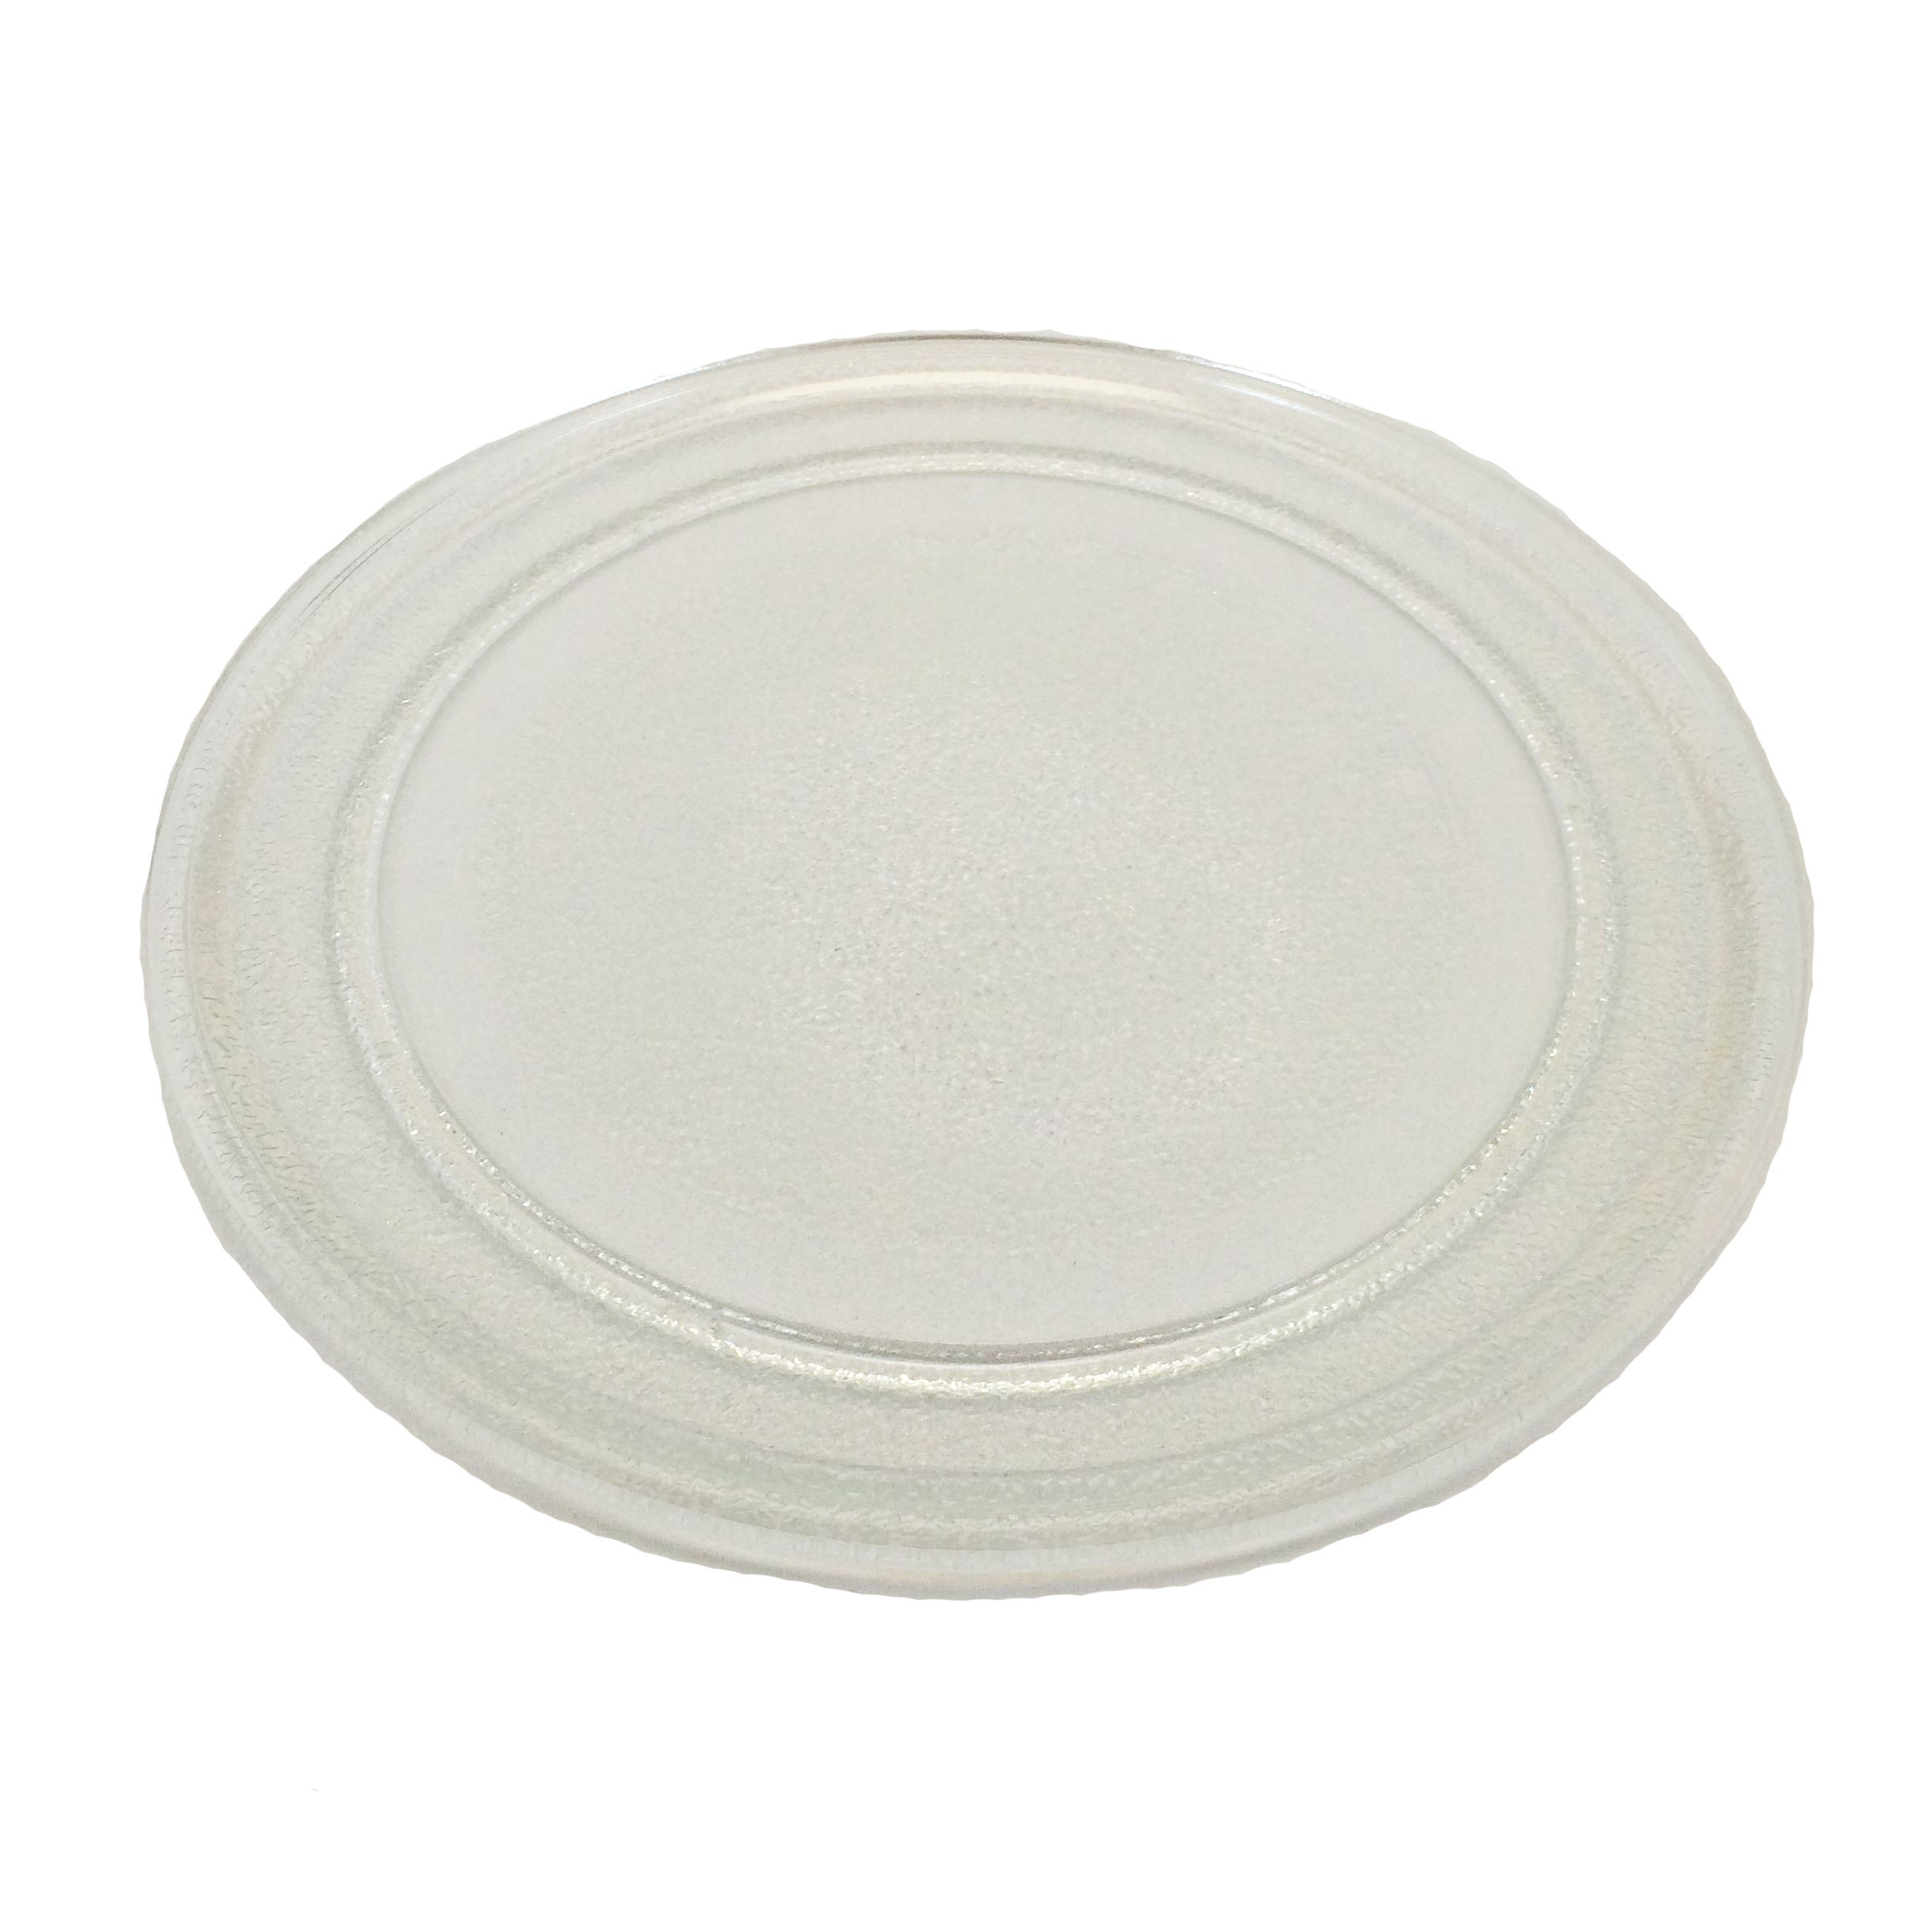 9.5'' Microwave Plate Glass For Sanyo EM-S105 Cookworks Pansonic Microwave Oven